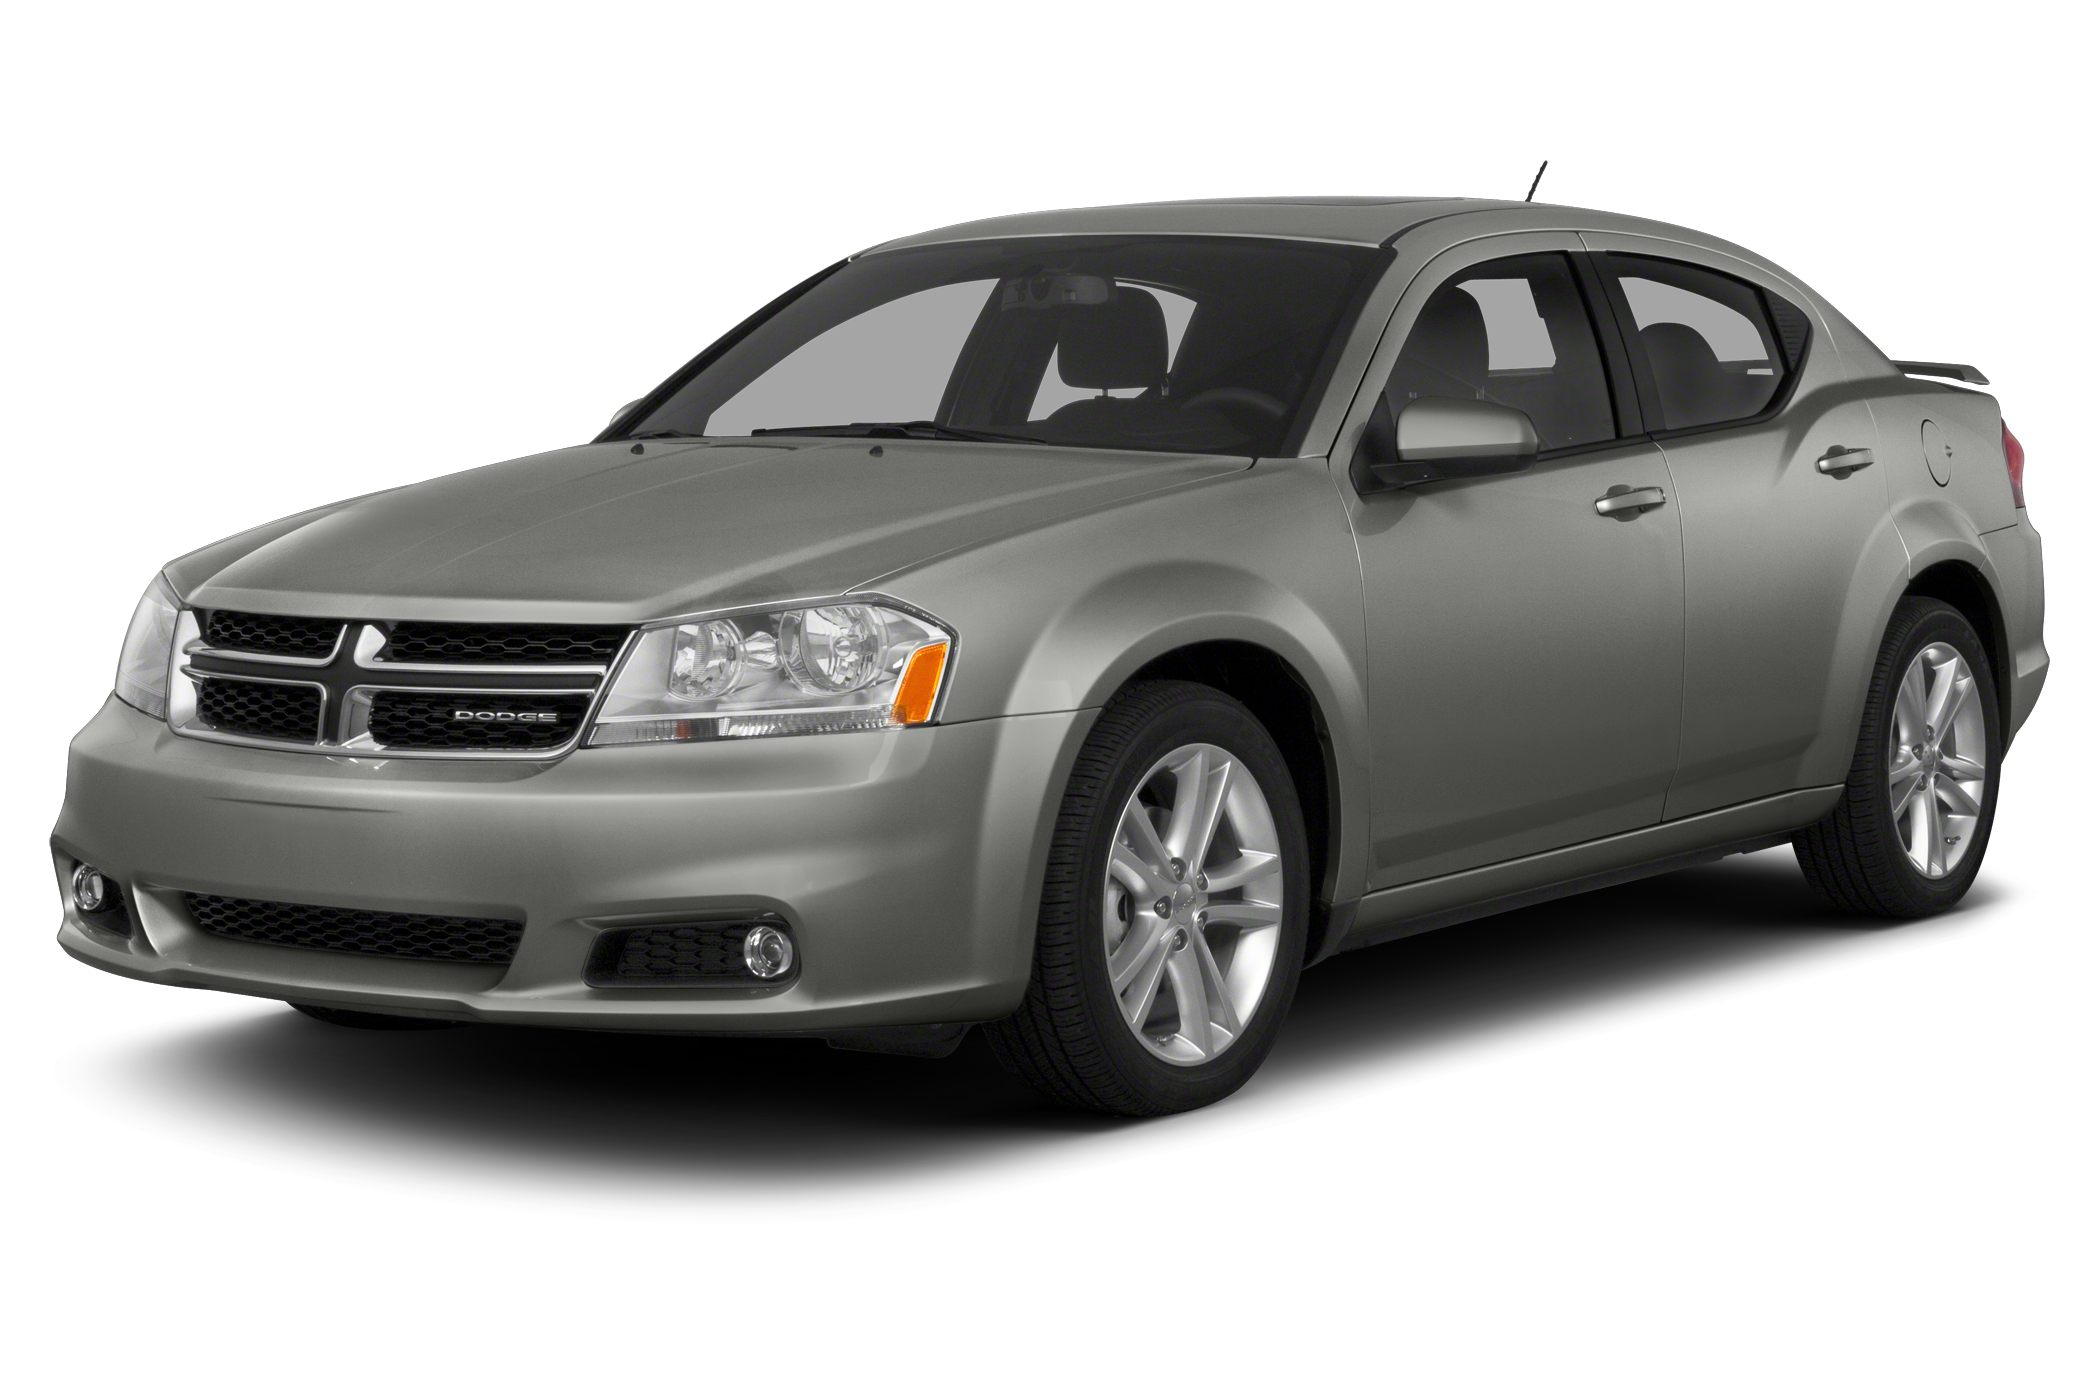 2013 Dodge Avenger SXT Sedan for sale in Martinsville for $15,000 with 43,232 miles